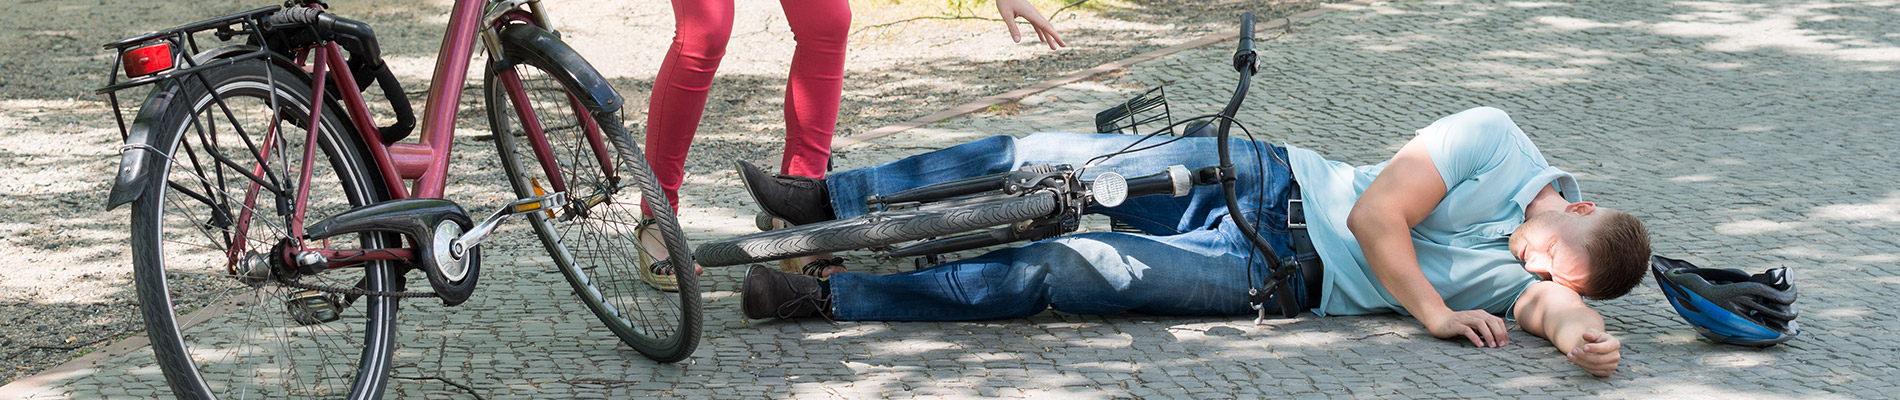 Higher Risk Accidents: Motorcycles and Bicycles